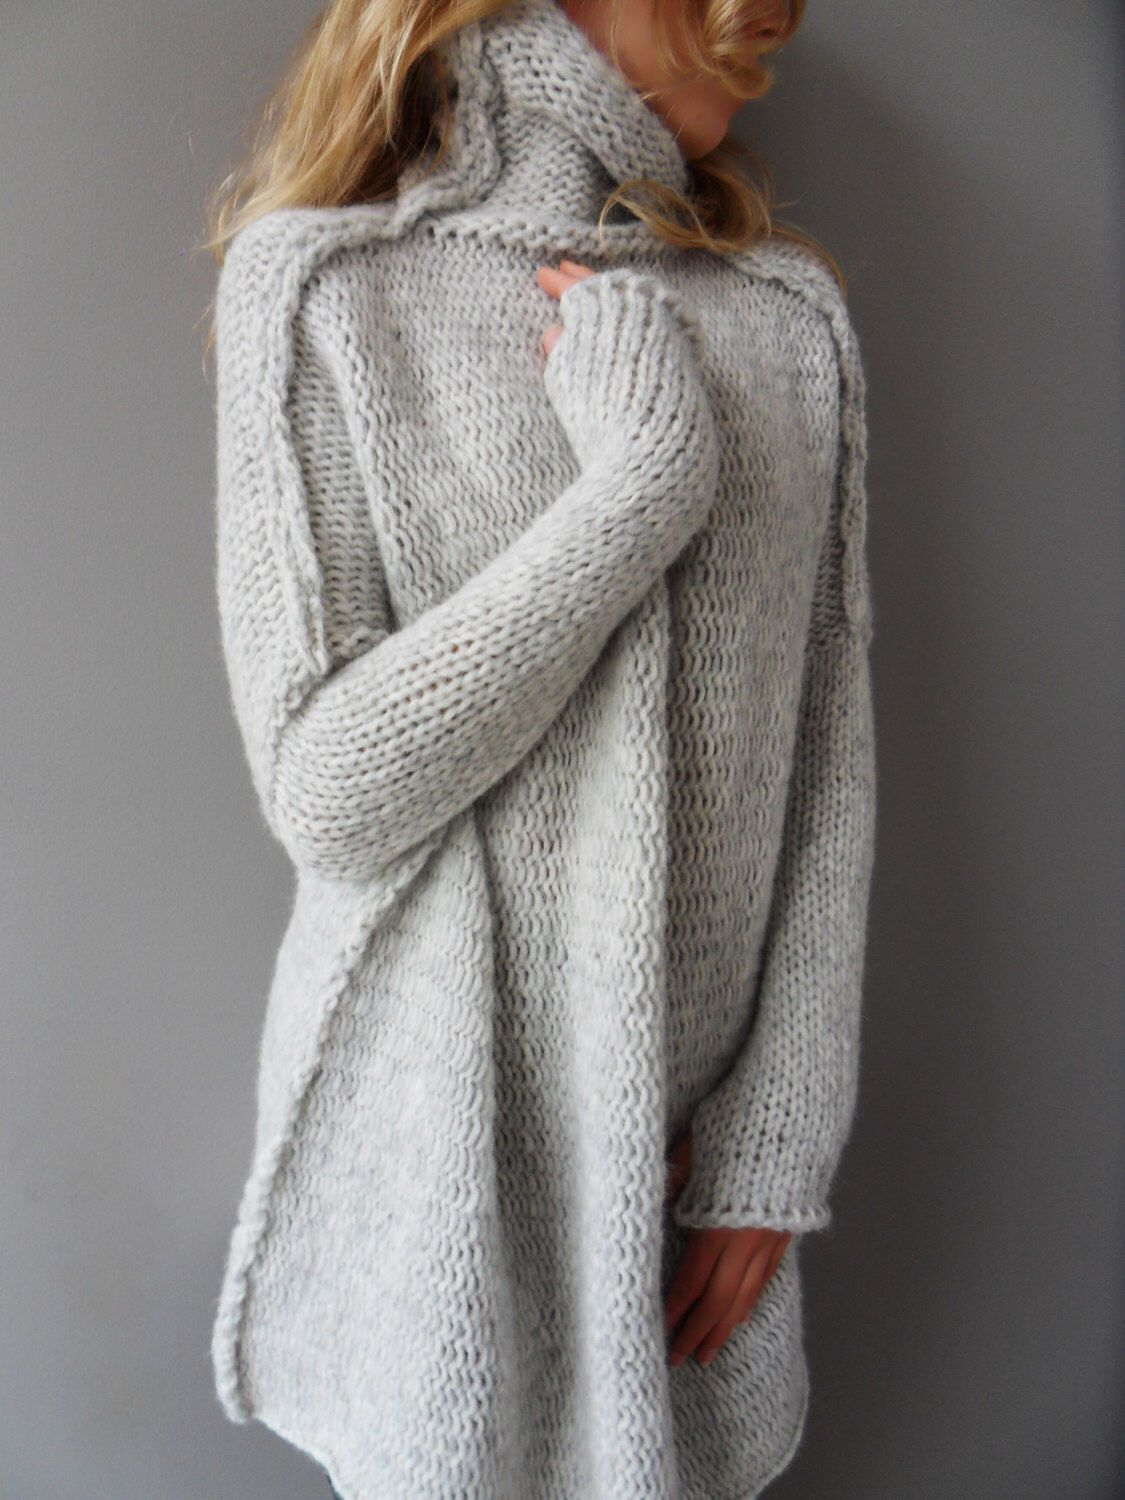 6f0e6d21801 Oversized / Slouchy / Bulky knit sweater. Alpaca/Wool women sweater. by  LeRosse